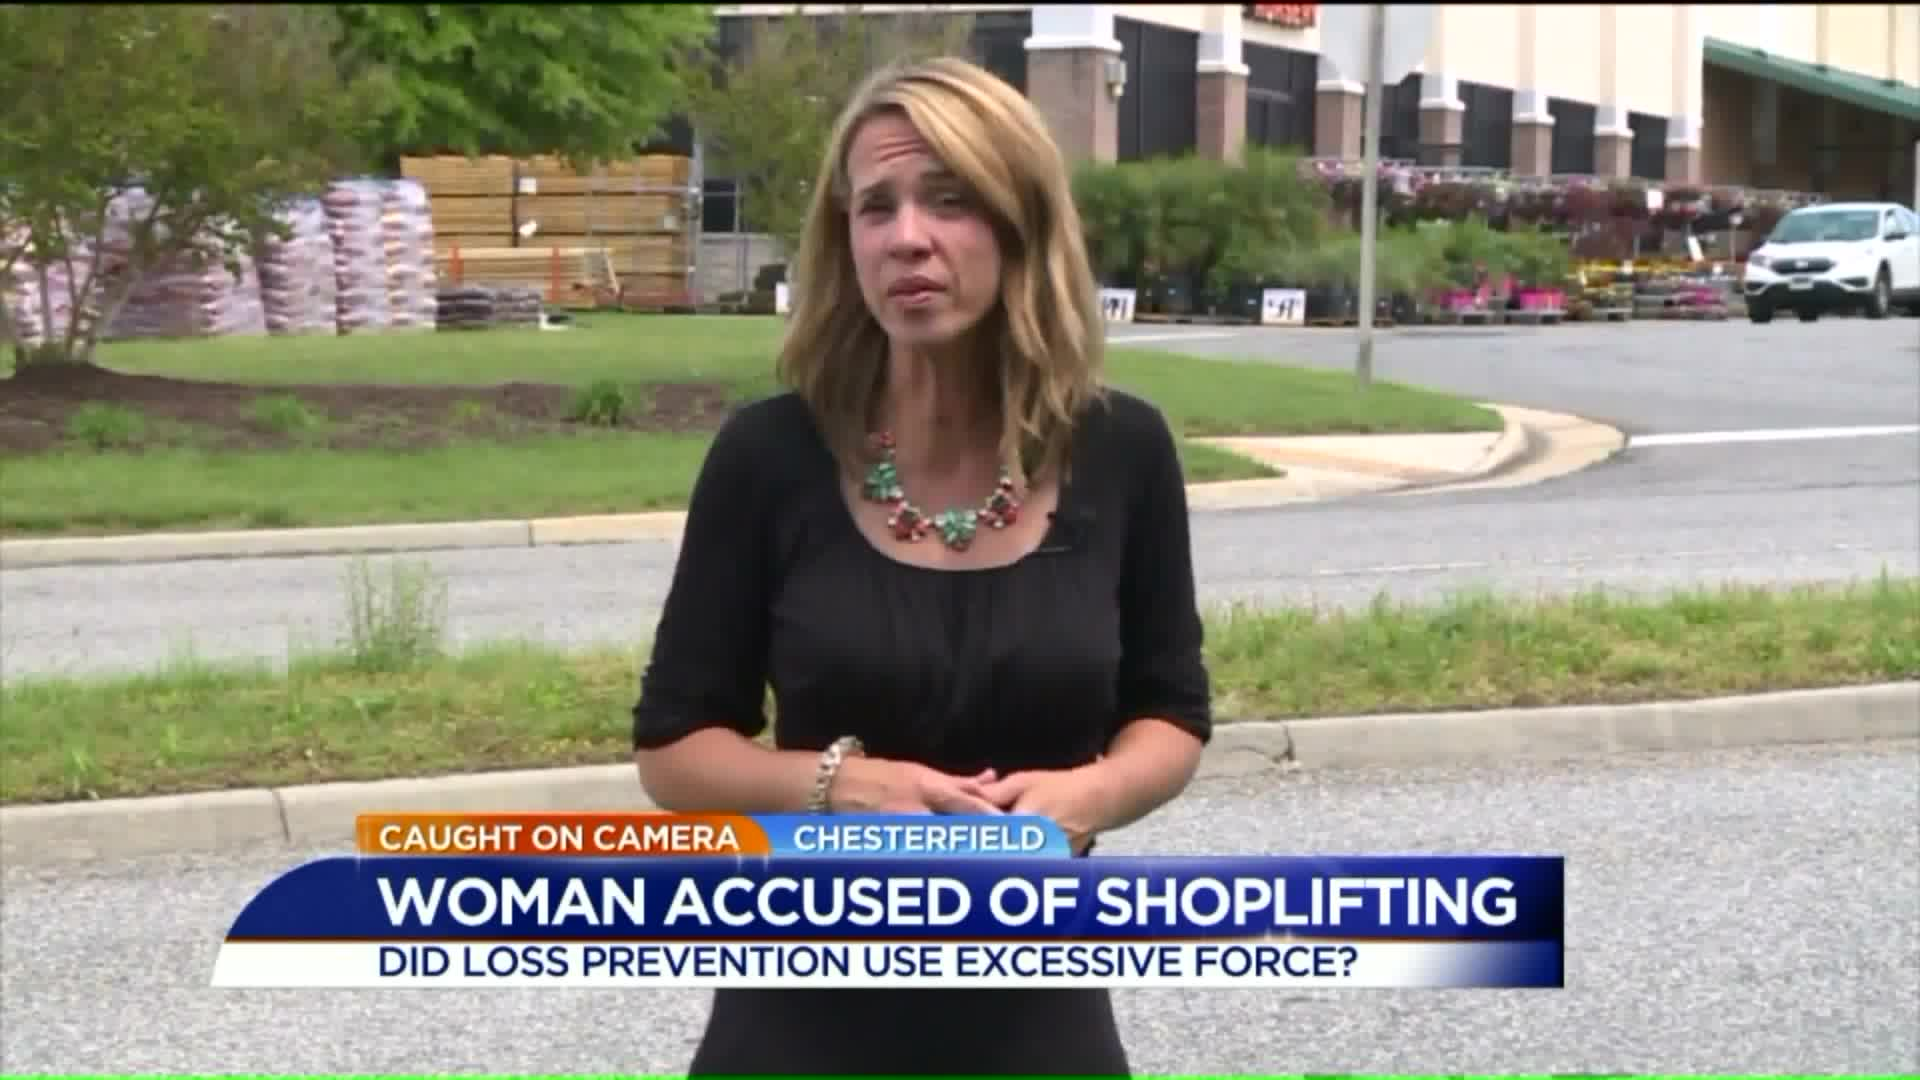 Woman Accused of Shoplifting Claims Excessive Force By Home Depot Loss Prevention